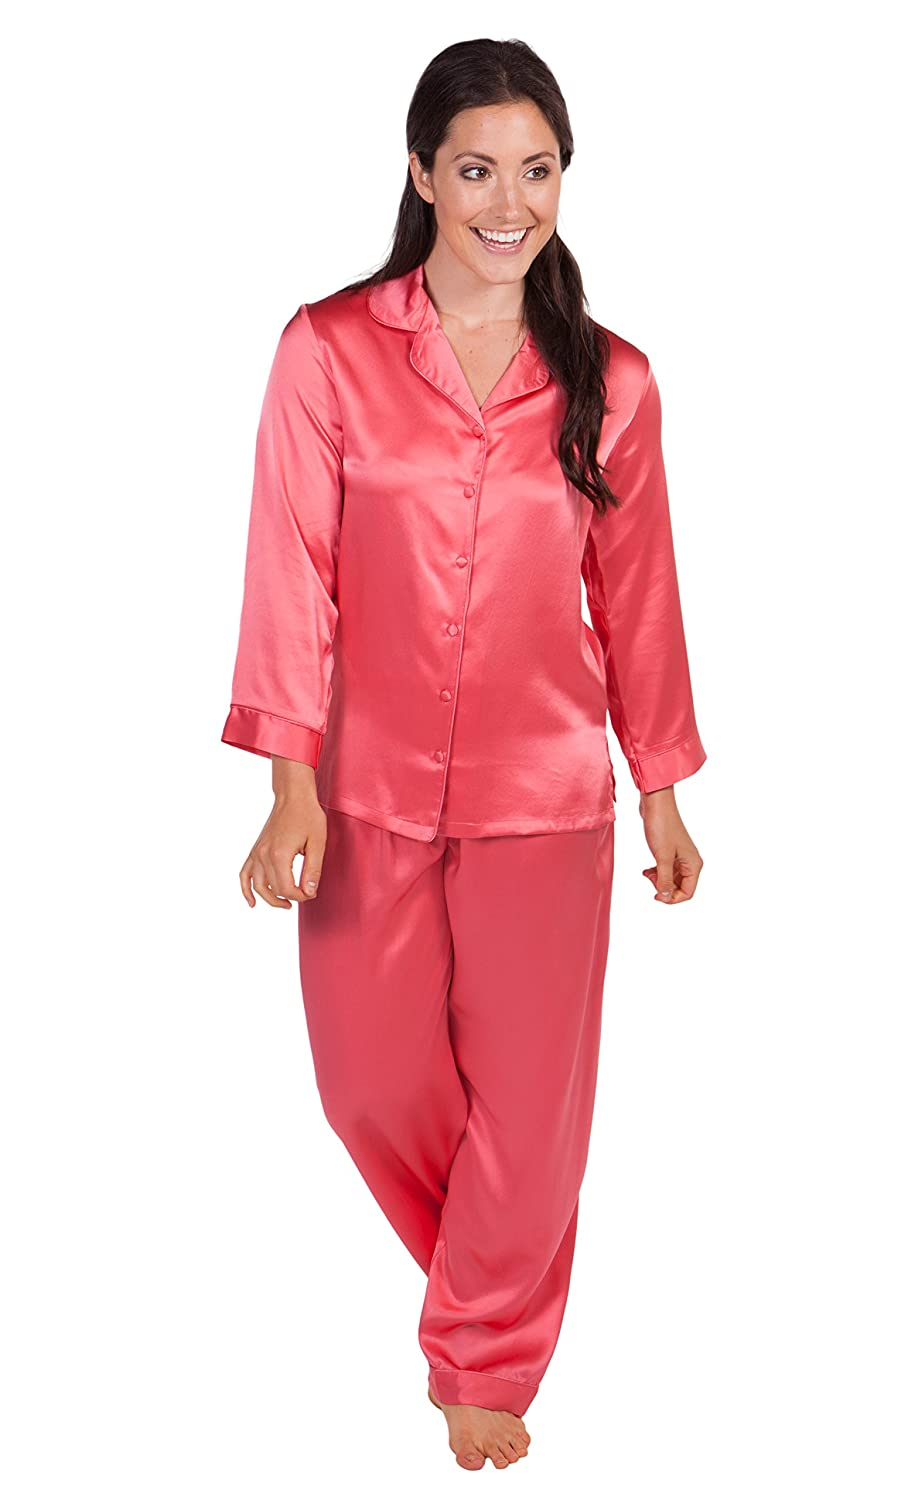 From cotton pajamas to luxurious silk pajamas for women, Julianna Rae's collection of designer pajamas are the perfect way to end a long day without sacrificing style or comfort. Choose from cotton sleepshirts, cotton or silk PJ sets, and silk sleepshirts, all with just the .